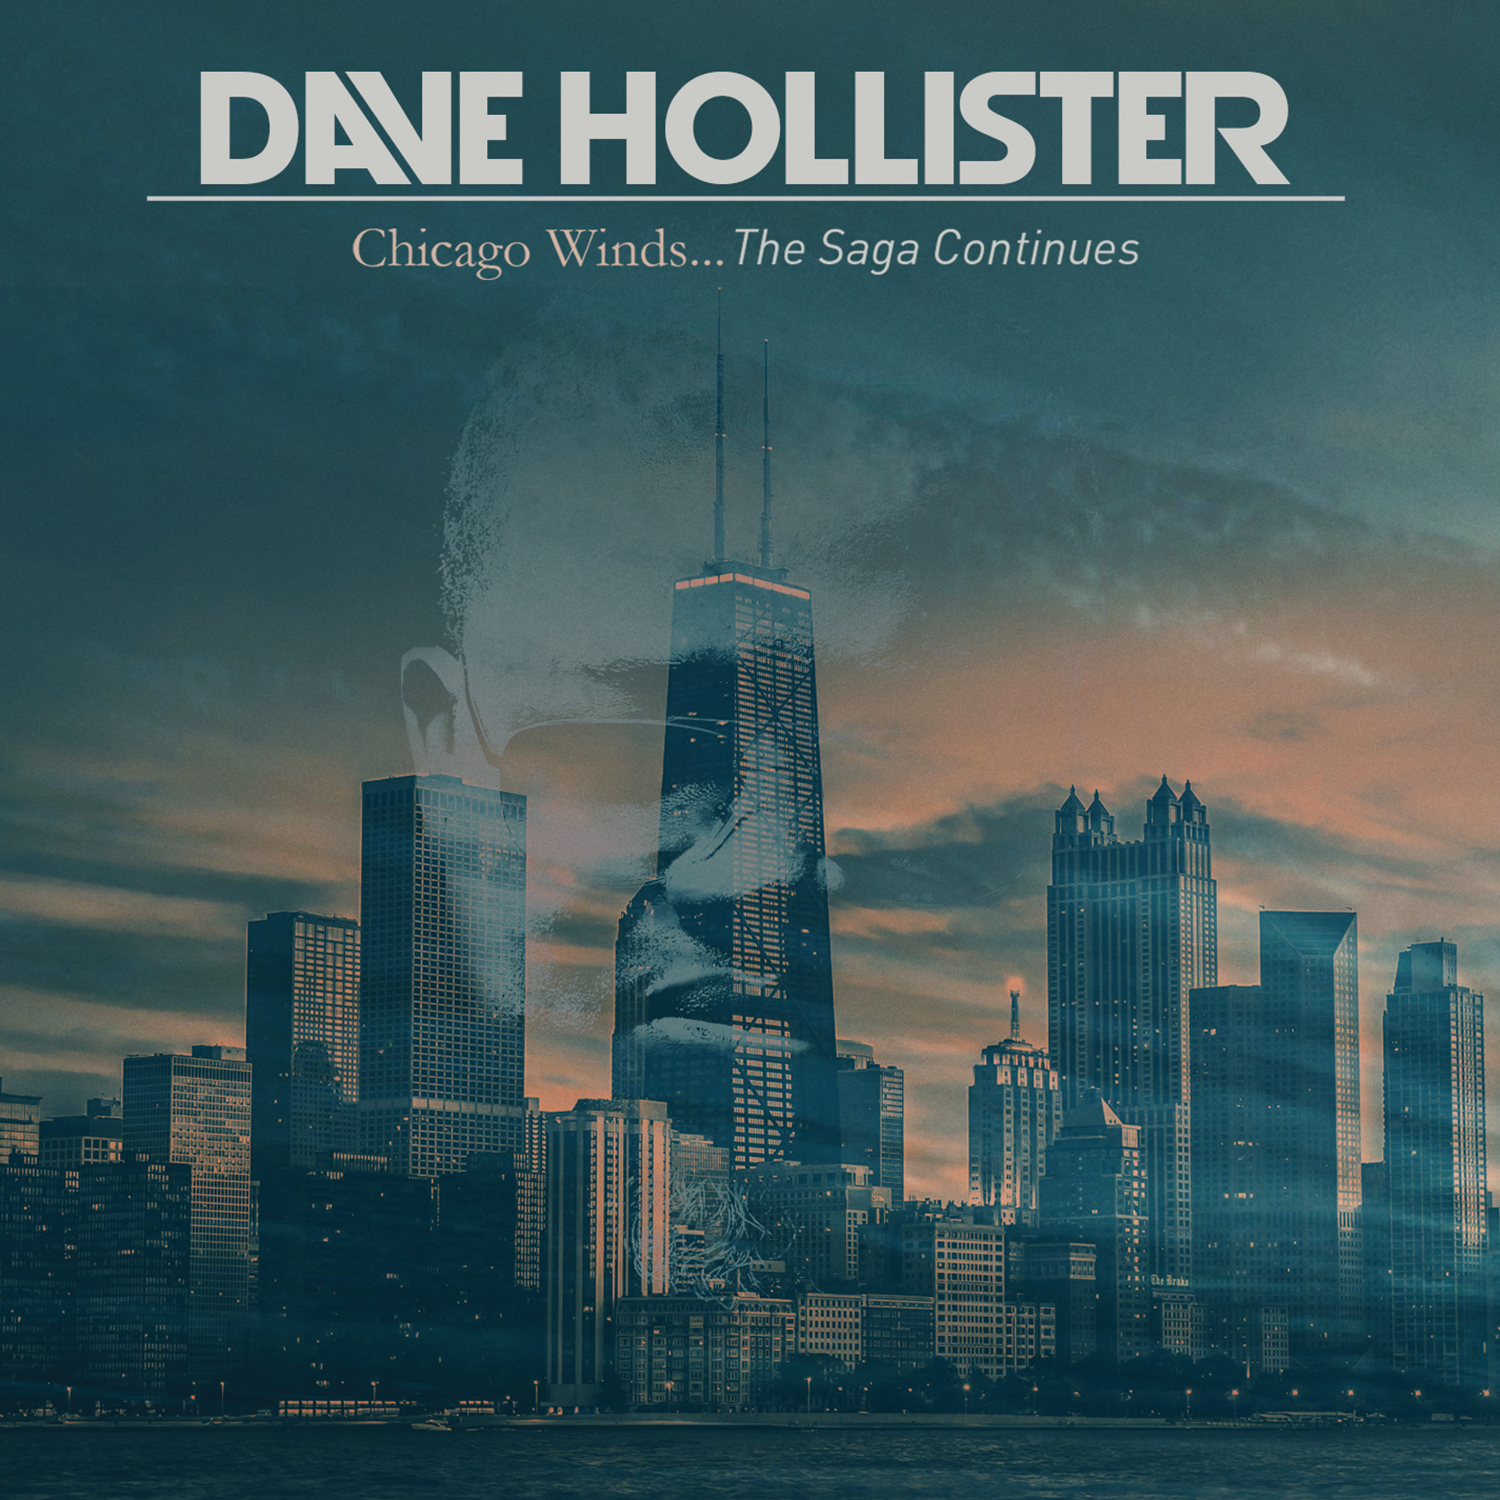 dave-hollister-chicago-winds-the-saga-continues